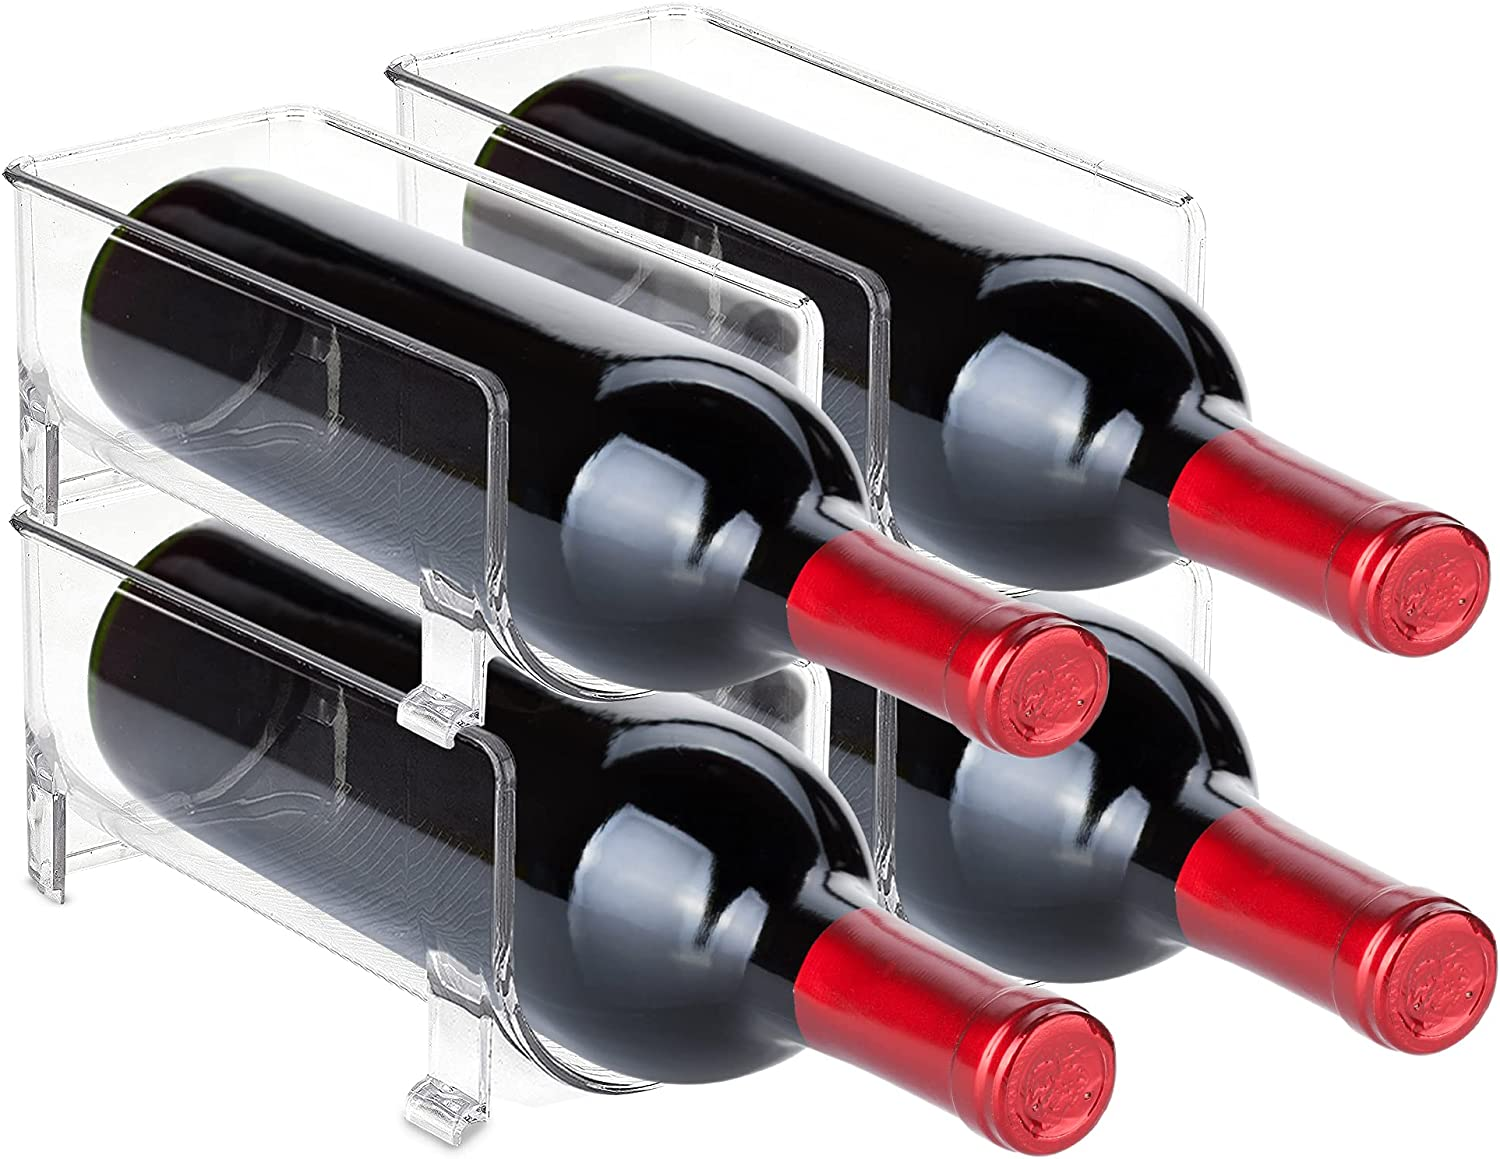 Max 45% OFF Trovety Wine Rack Holder - Cabinet Fridge and Organizers SEAL limited product Stora